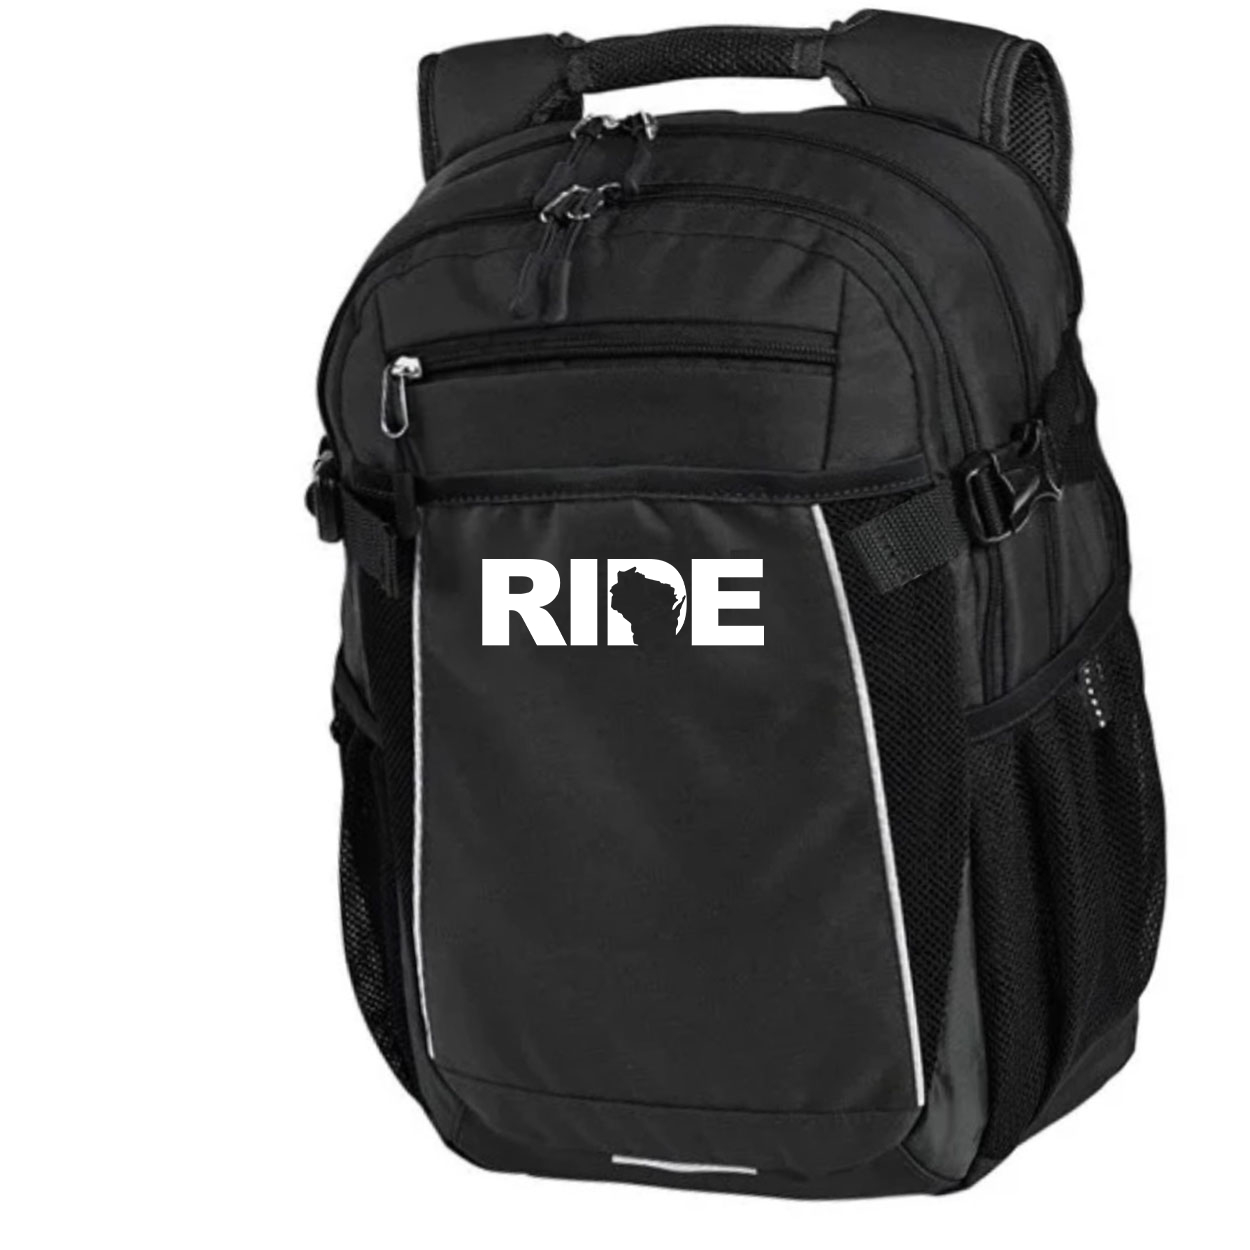 Ride Wisconsin Classic Pro Pioneer Backpack Black (White Logo)